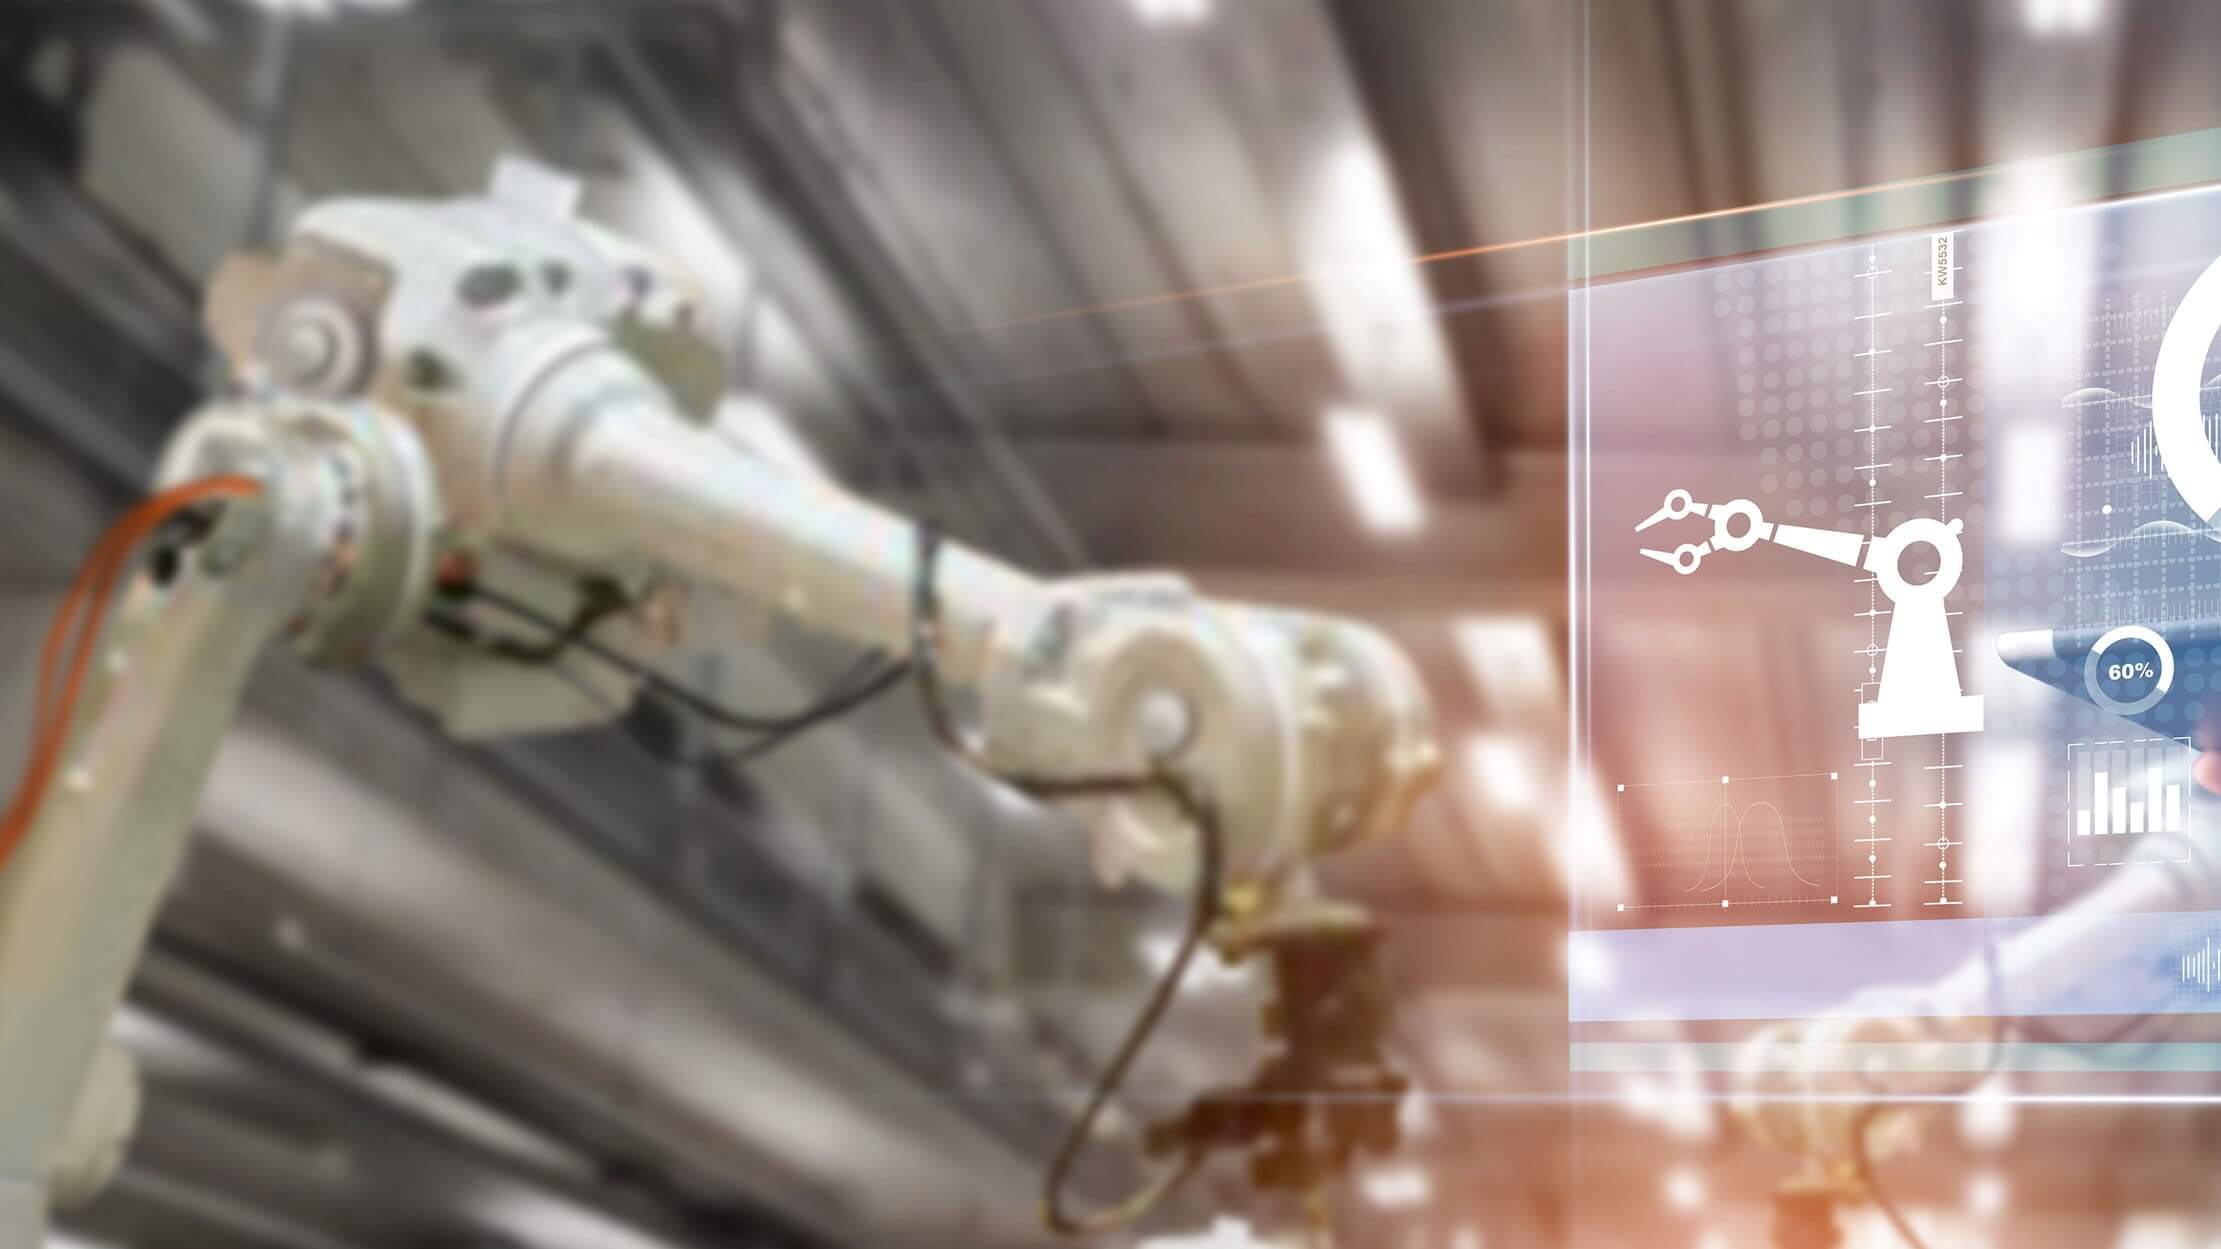 Automated Virtual Agent saves cost and time for large water supply and utility company